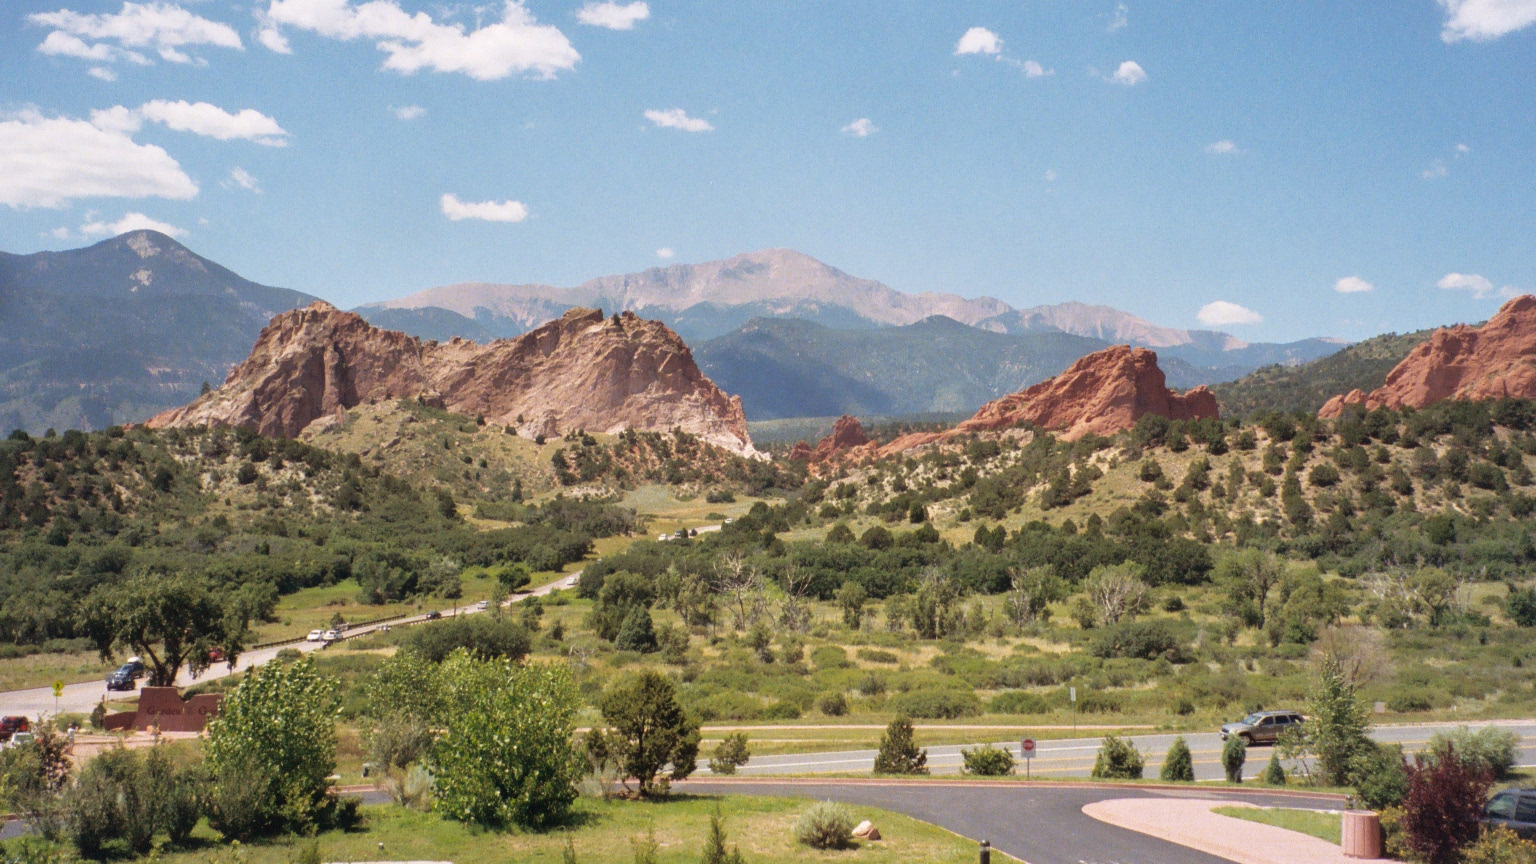 Free Download The Garden Of The Gods Park In Colorado Springs